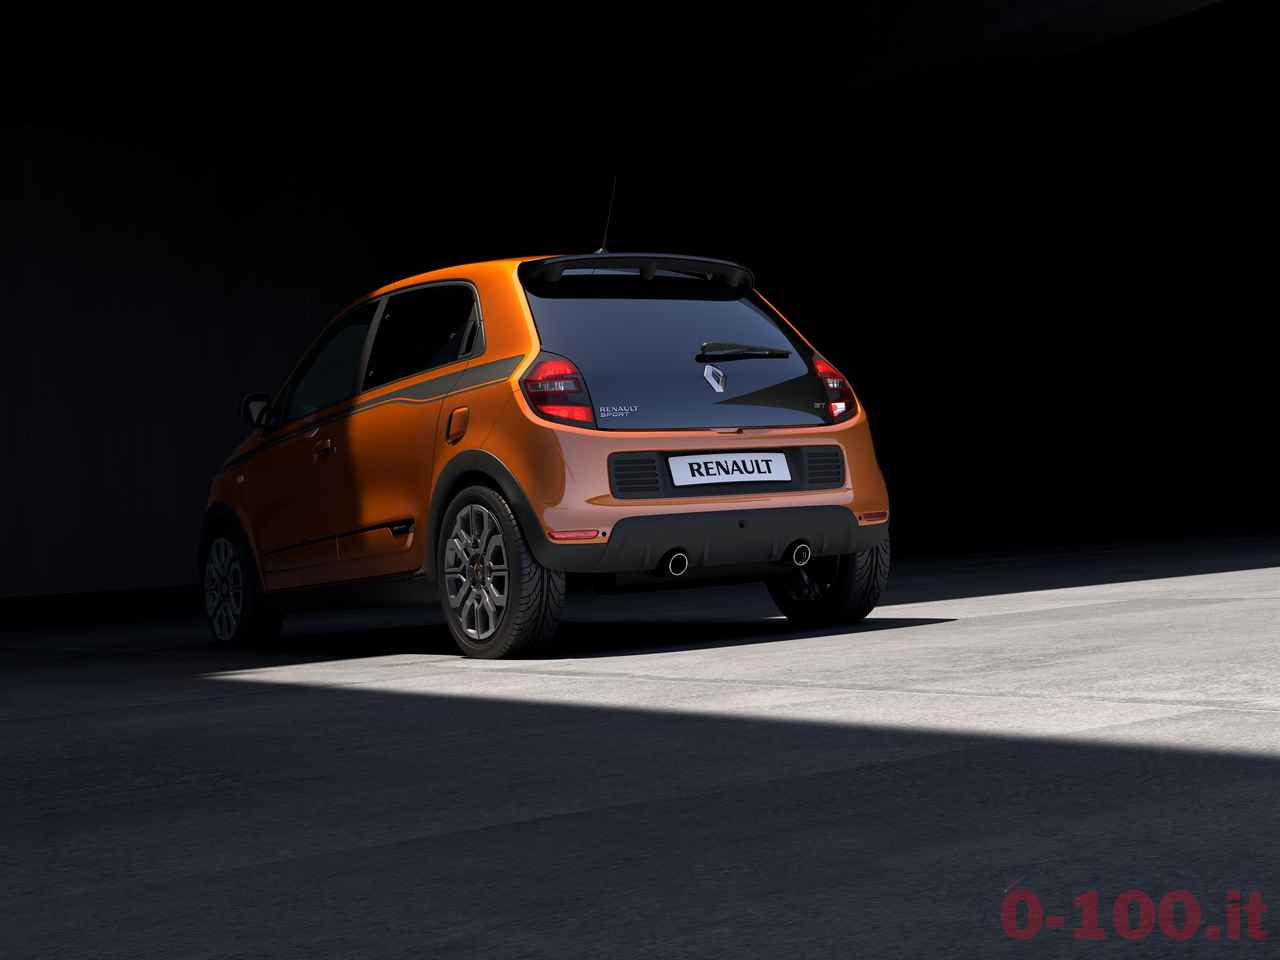 renault-twingo-gt-prezzo-price-festival-of-speed-di-goodwood-2016_0-1006